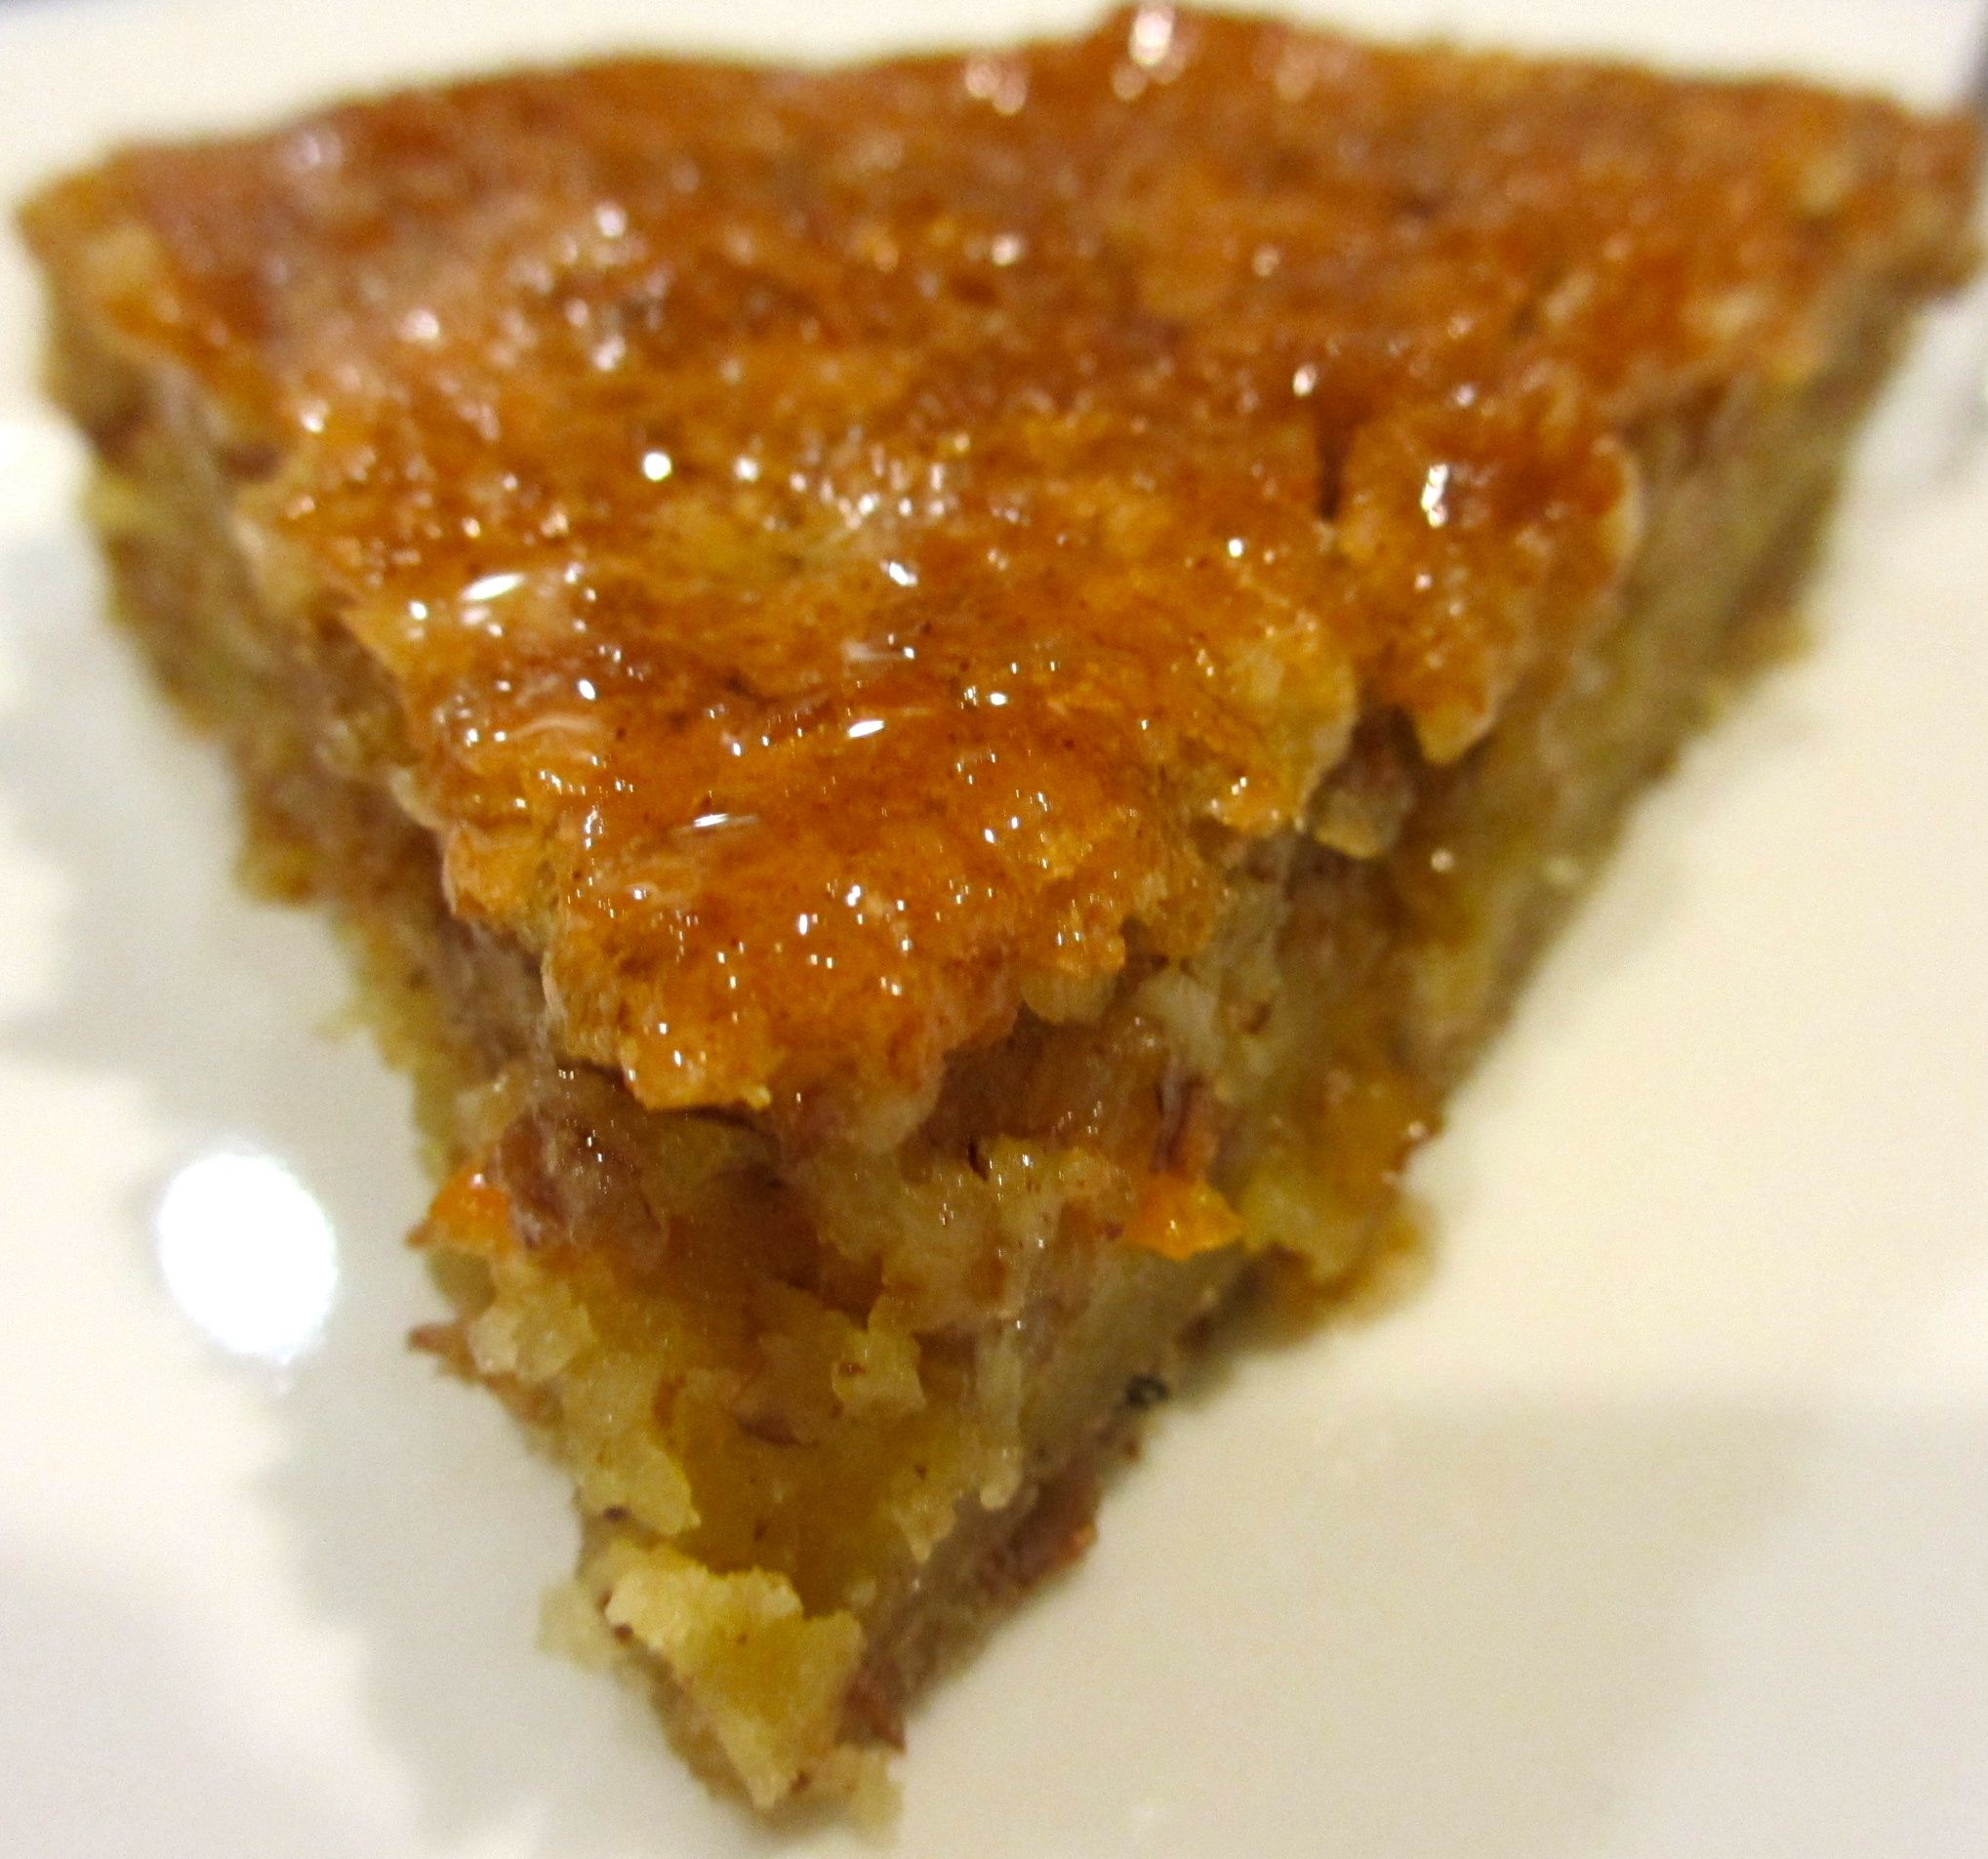 Passover Honey Nut Cake in Soaking Syrup